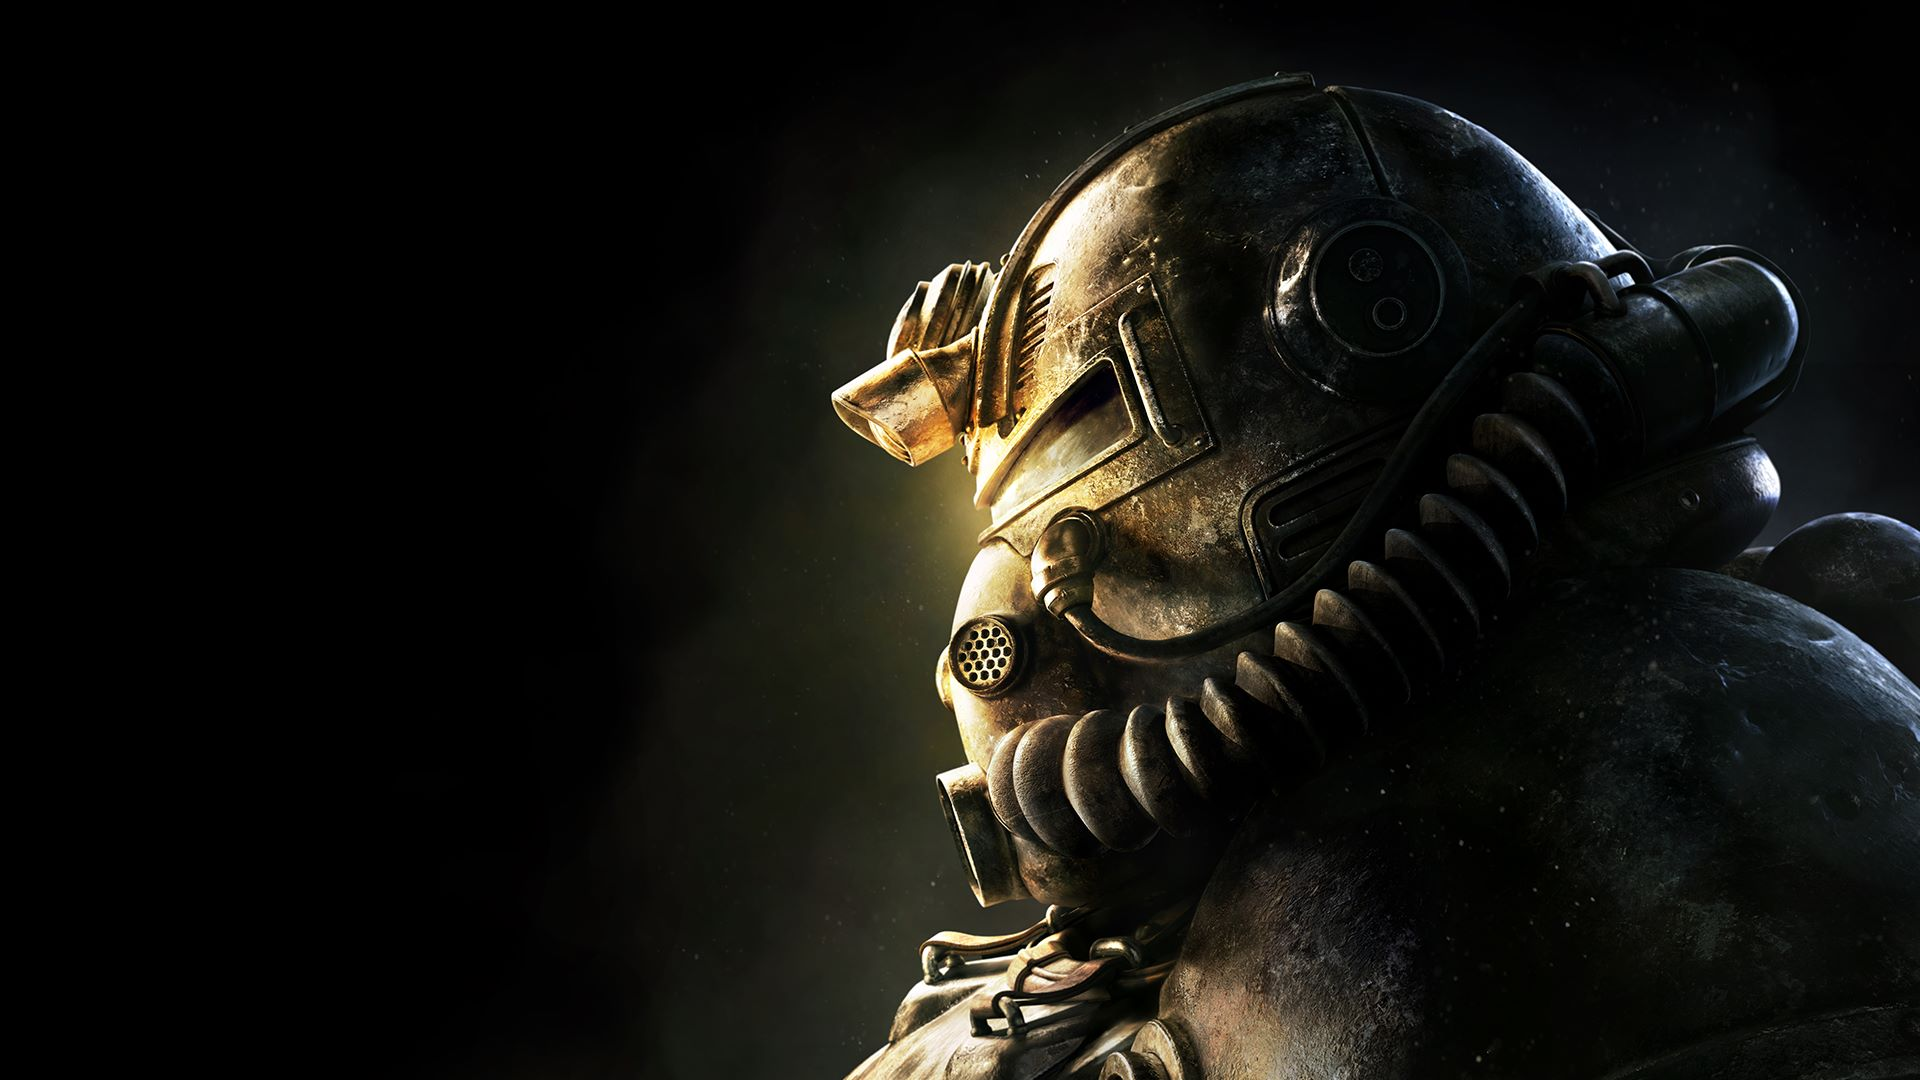 fallout-tv-show-on-amazon-prime:-trailer,-release-date-predictions-and-what-we-know